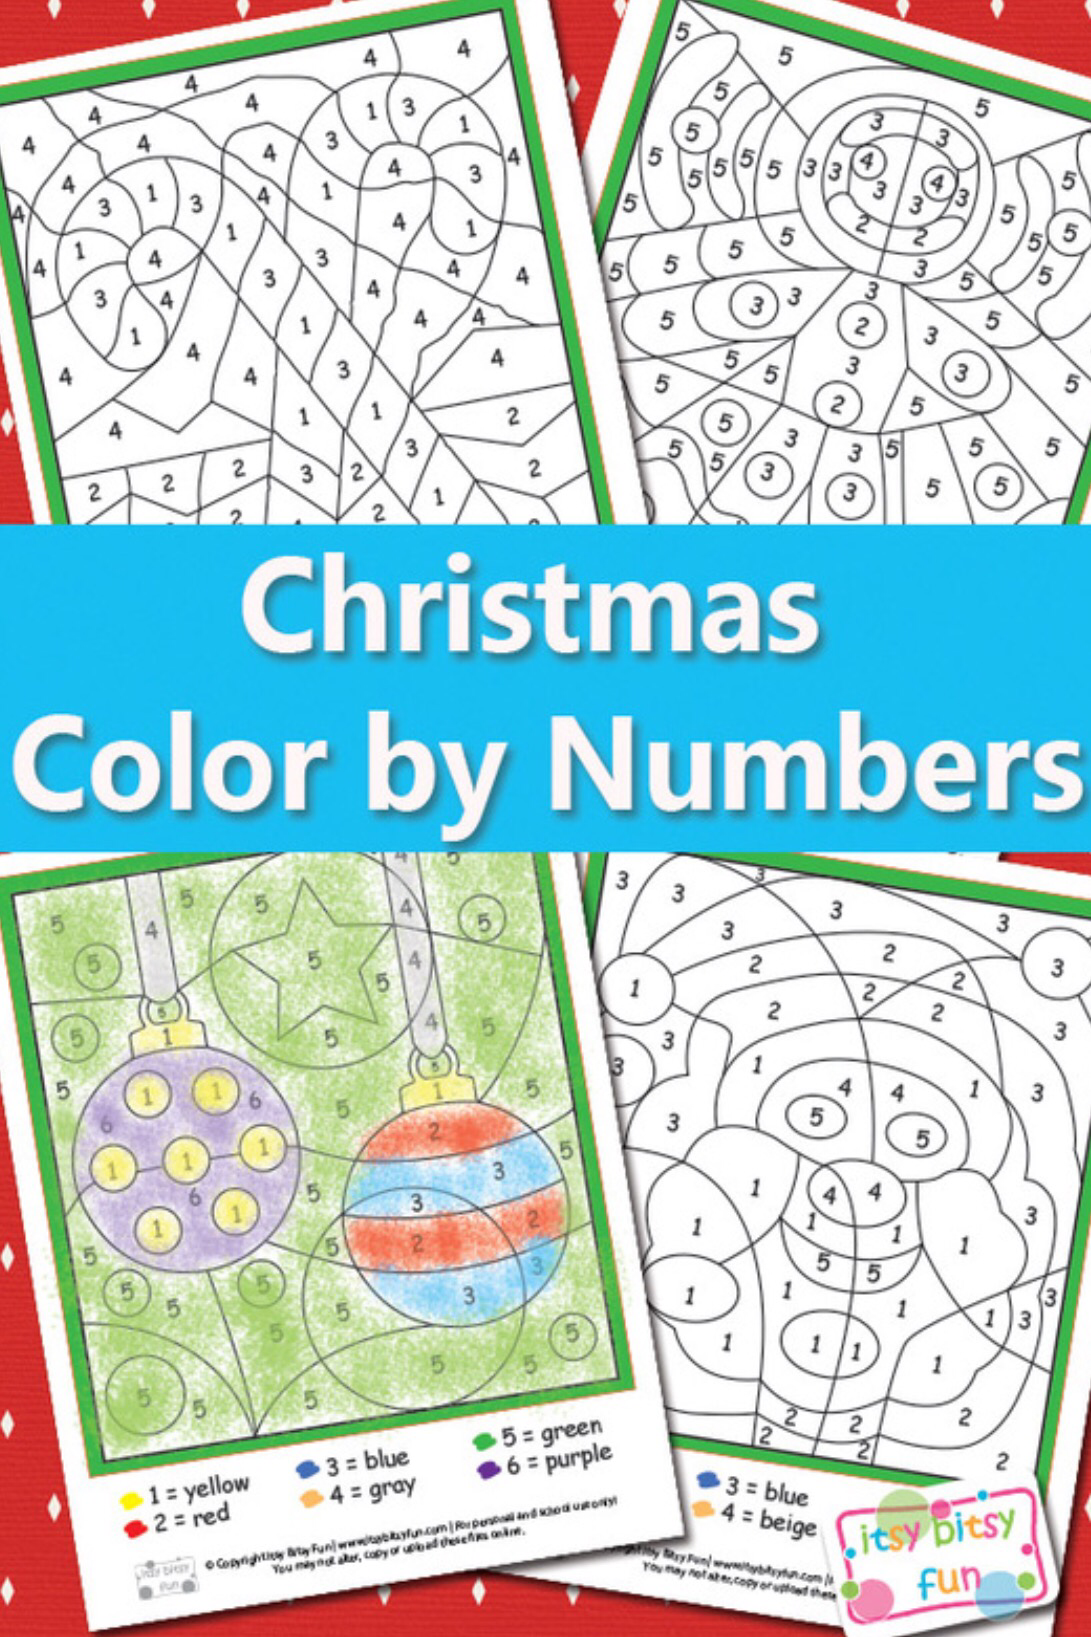 Color By Numbers Worksheet Round Up | School worksheets, Free ...